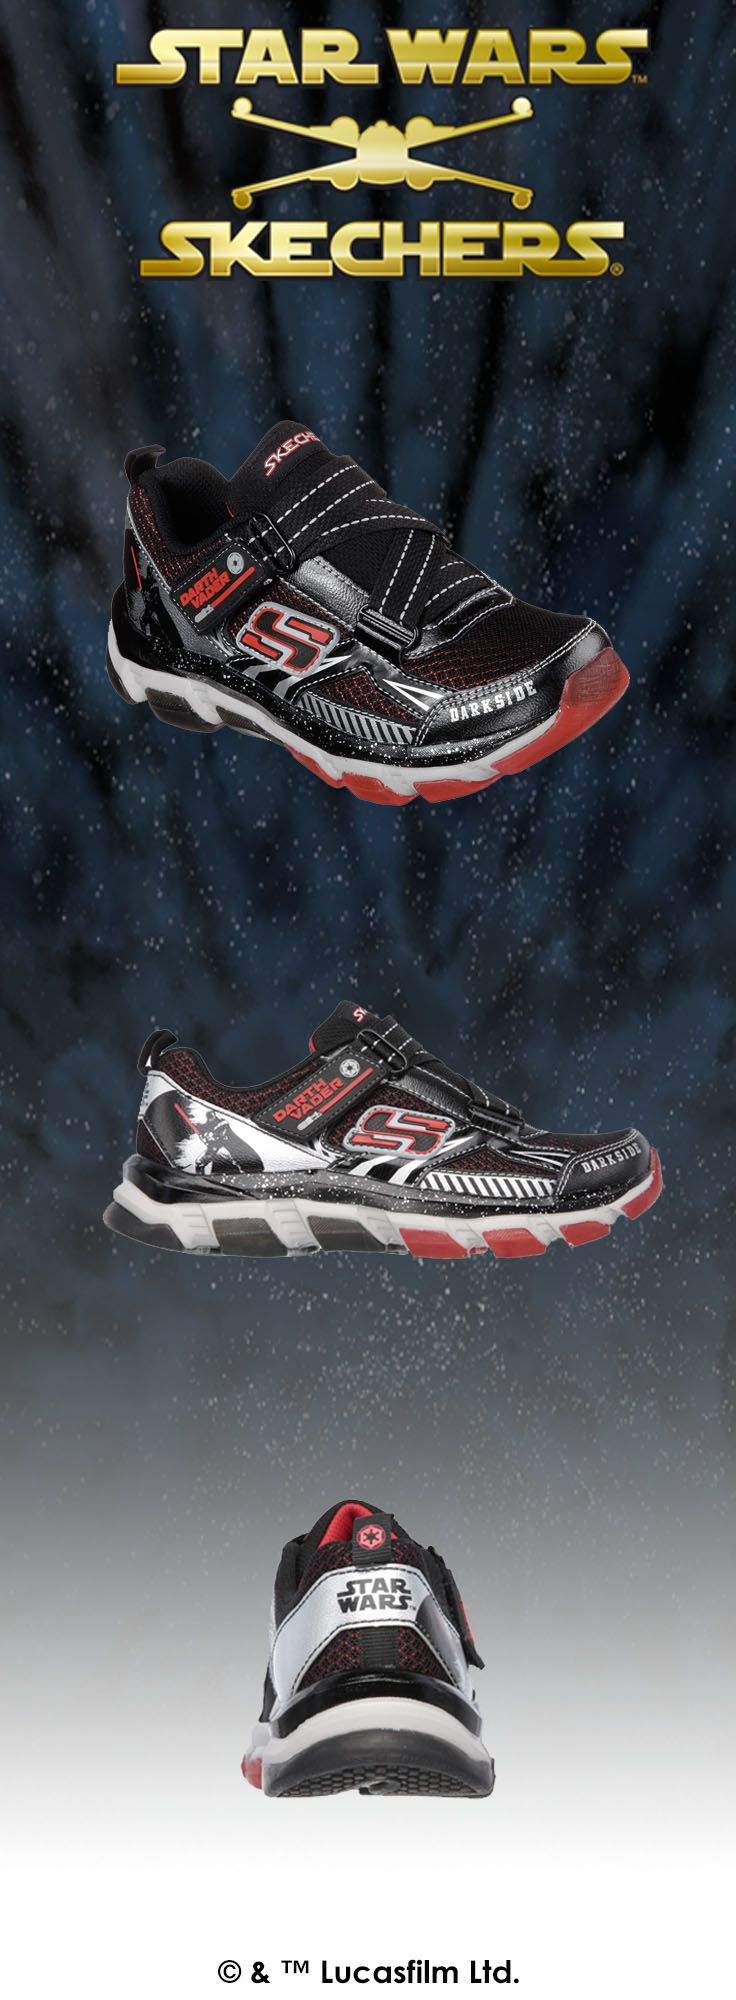 Star Wars™ Skechers helps you show allegiance to one of the coolest villains of all time—Darth Vader™!   http://spr.ly/6004BuHw6